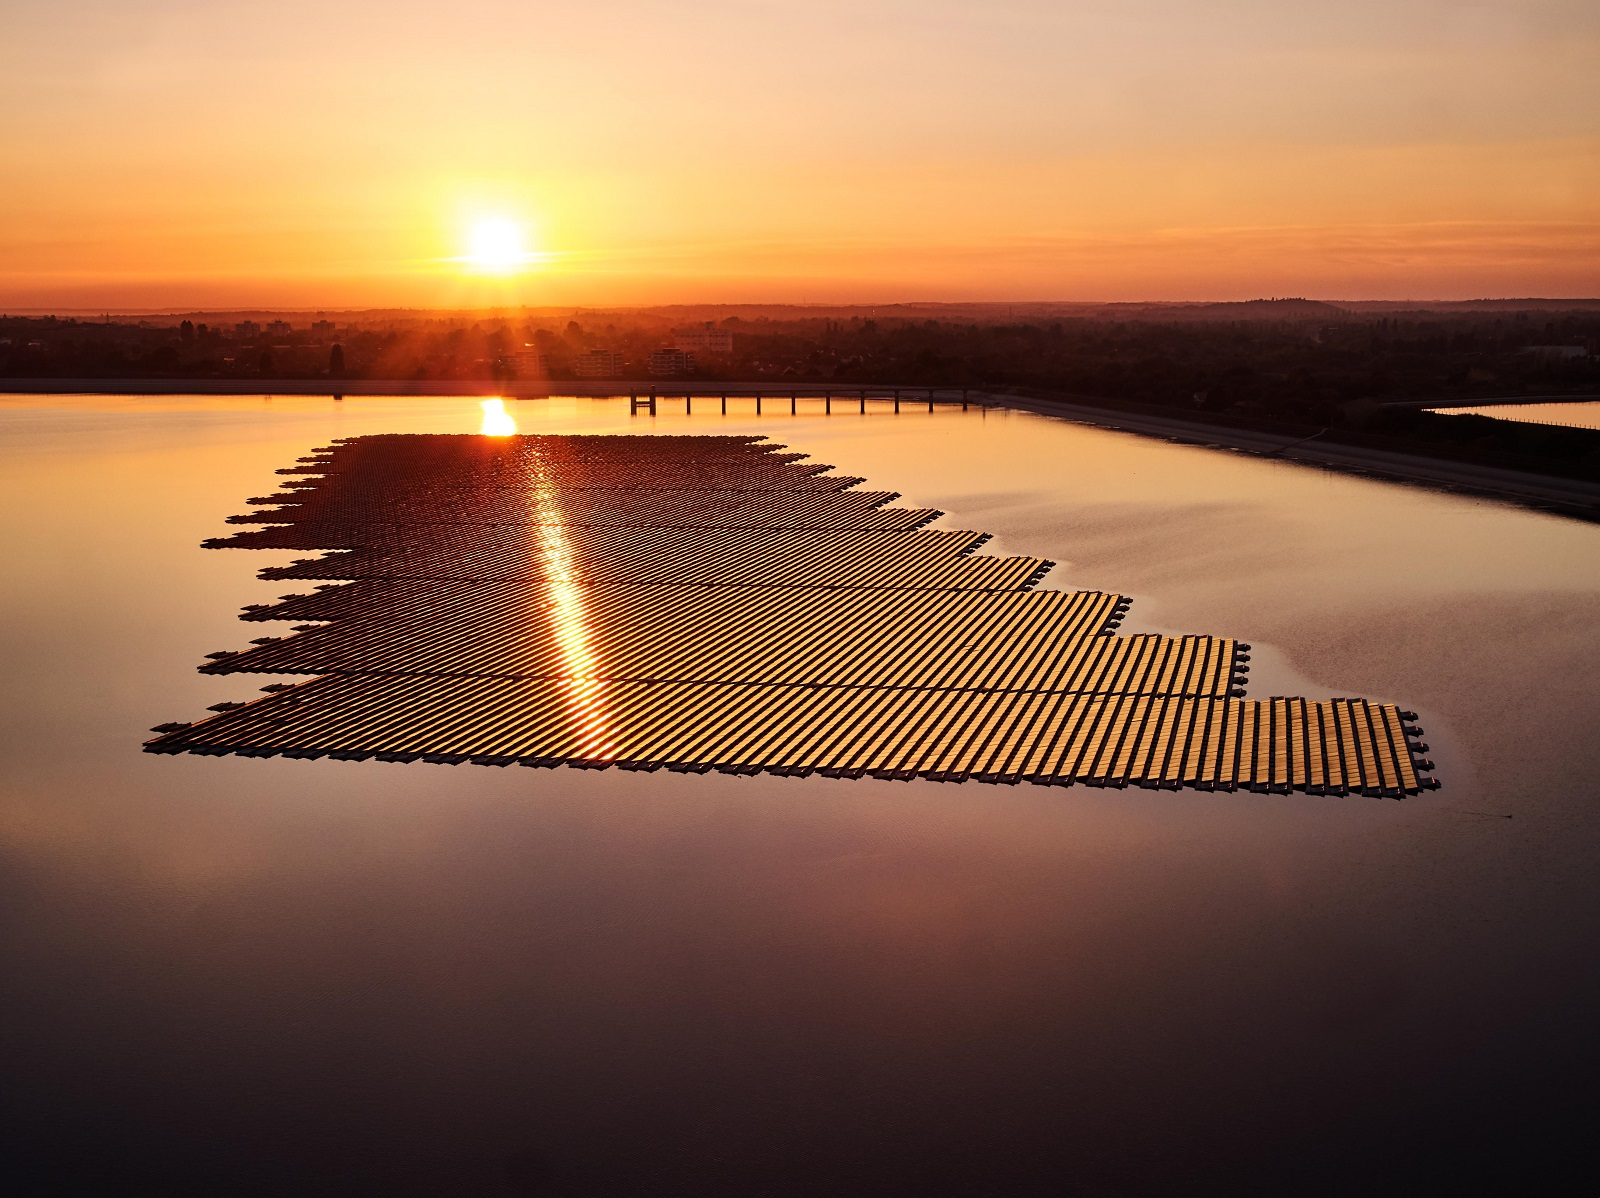 Lightsource BP's only floating solar project to date, the 6.3MW install on the QEII Reservoir in the UK. Image: Lightsource BP.